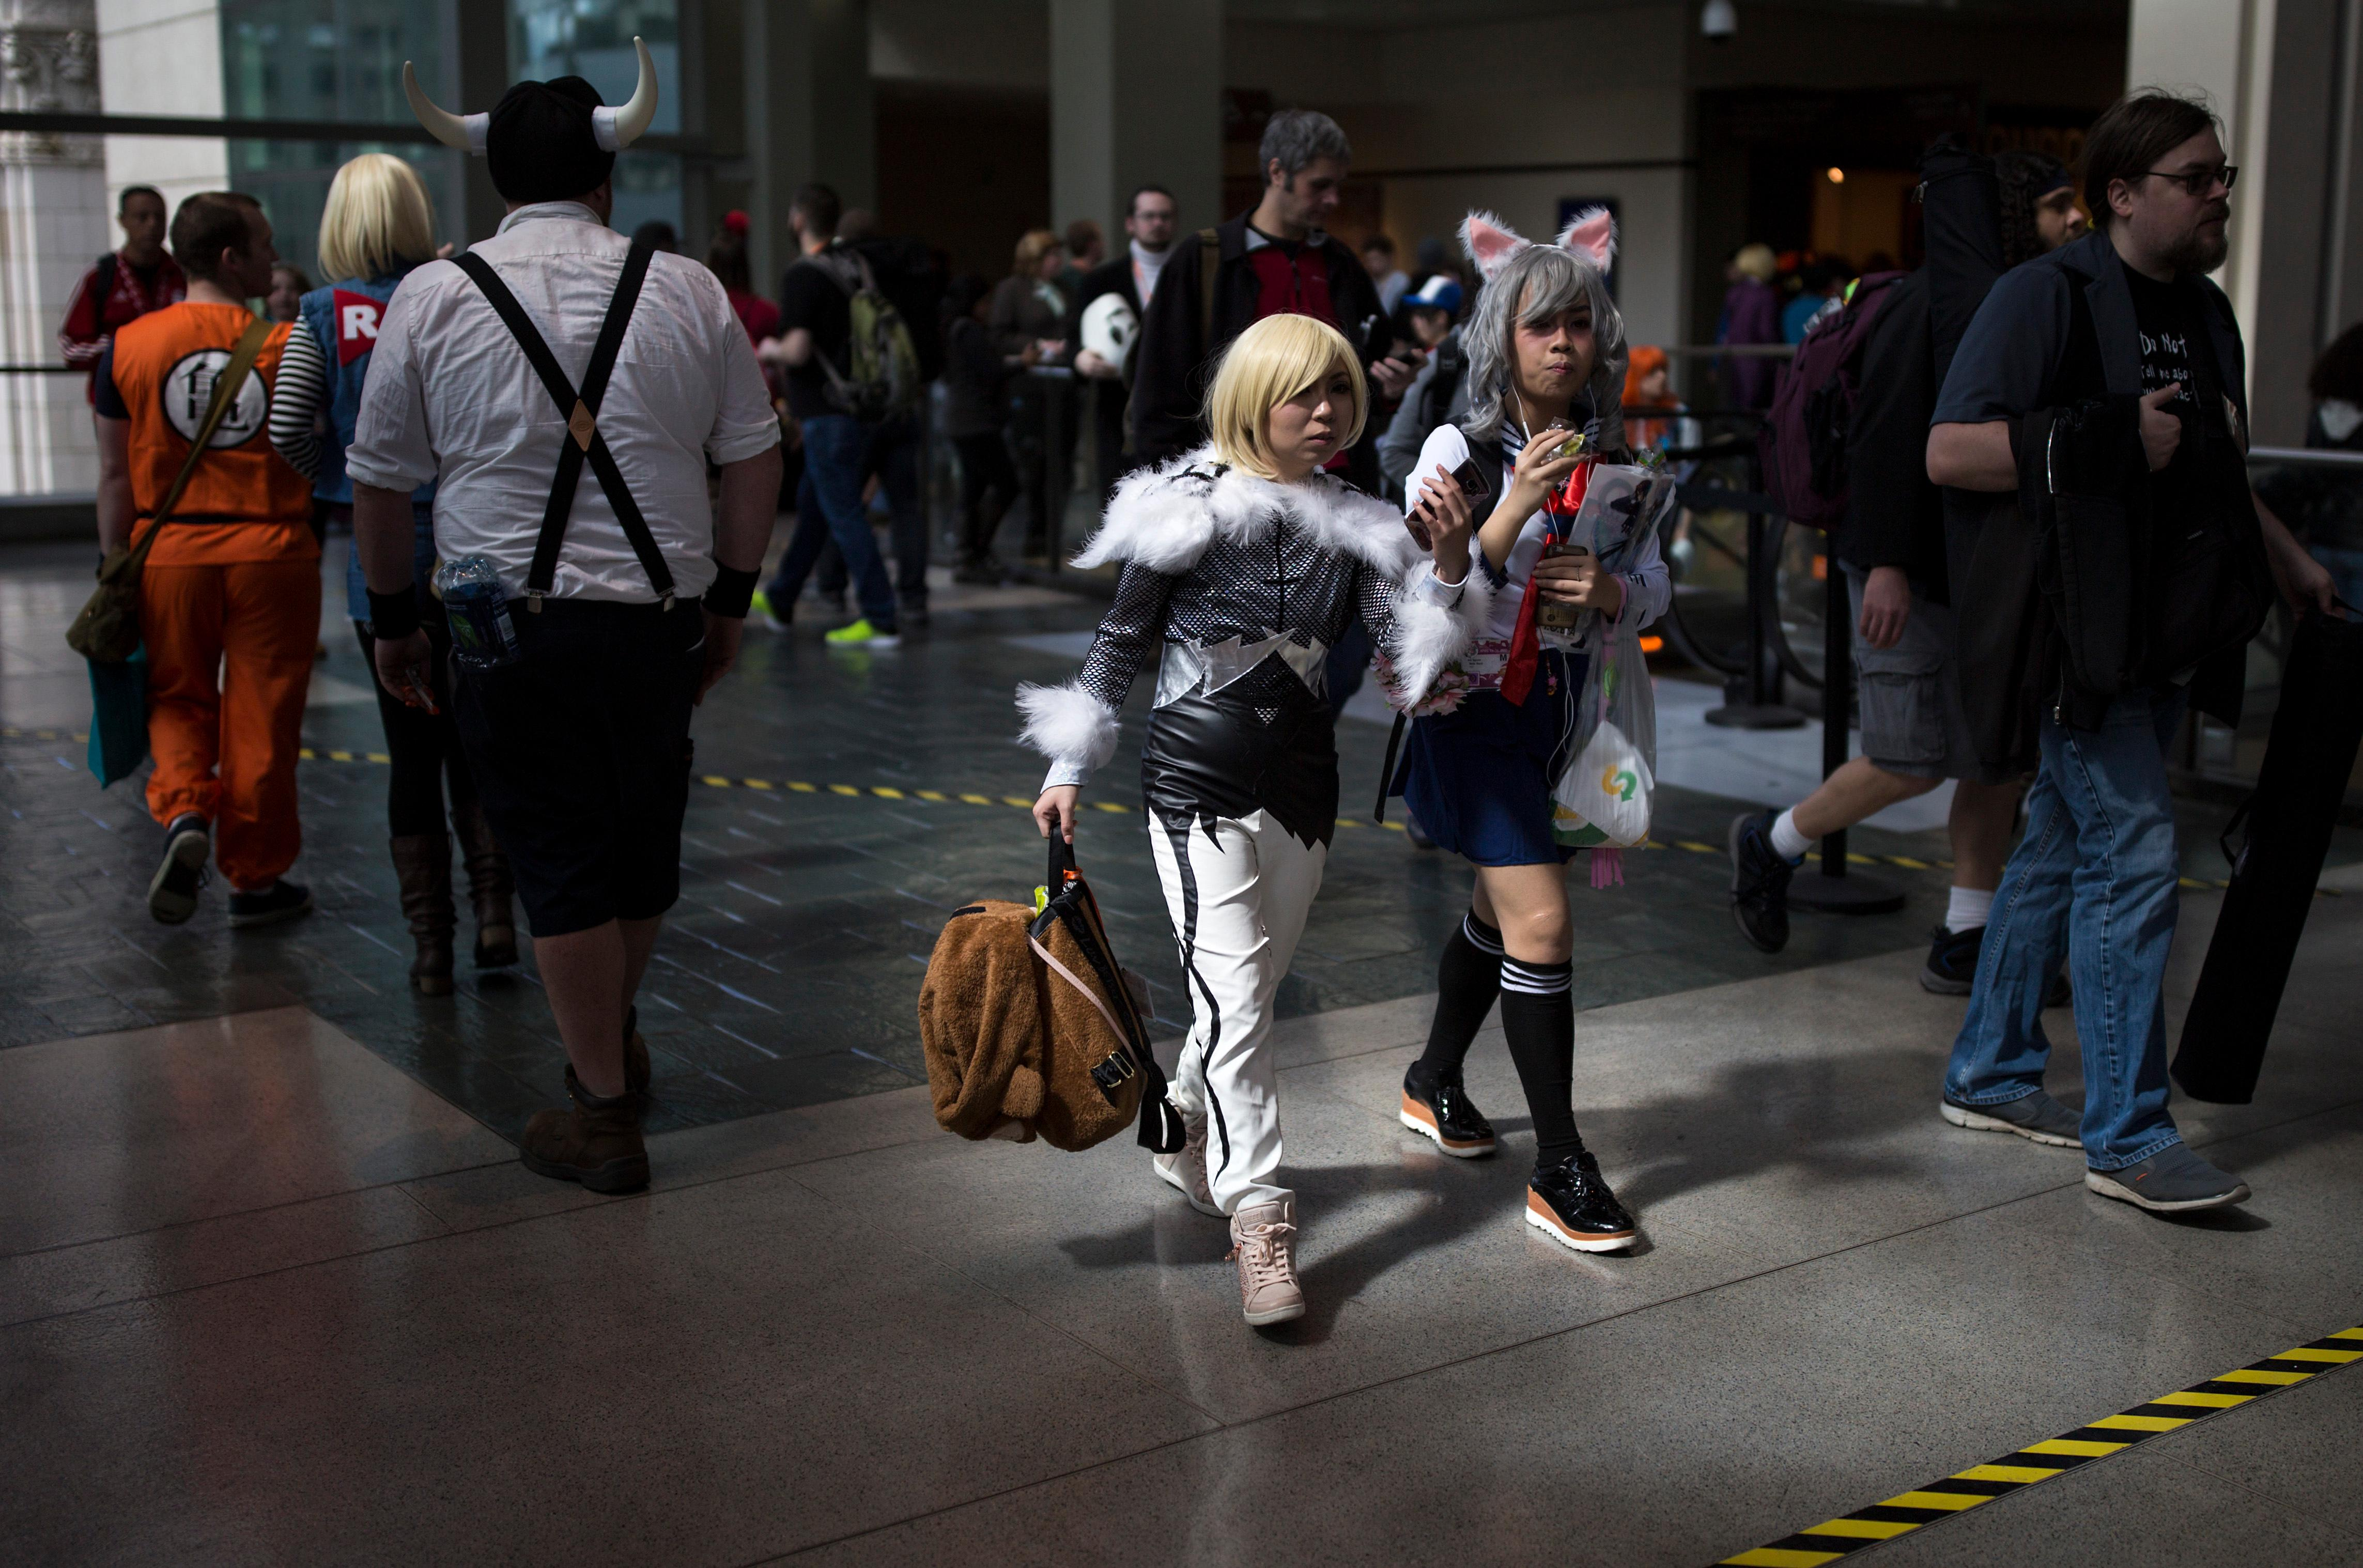 An abundance of cosplay can be seen during day two of Sakura-Con, the three day anime convention at the Washington State Convention Center. Sakura-Con is the oldest and most well attended anime convention in the Pacific Northwest. Member attendance for Sakura-Con 2016 was over 23,000 individuals. (Sy Bean / Seattle Refined)